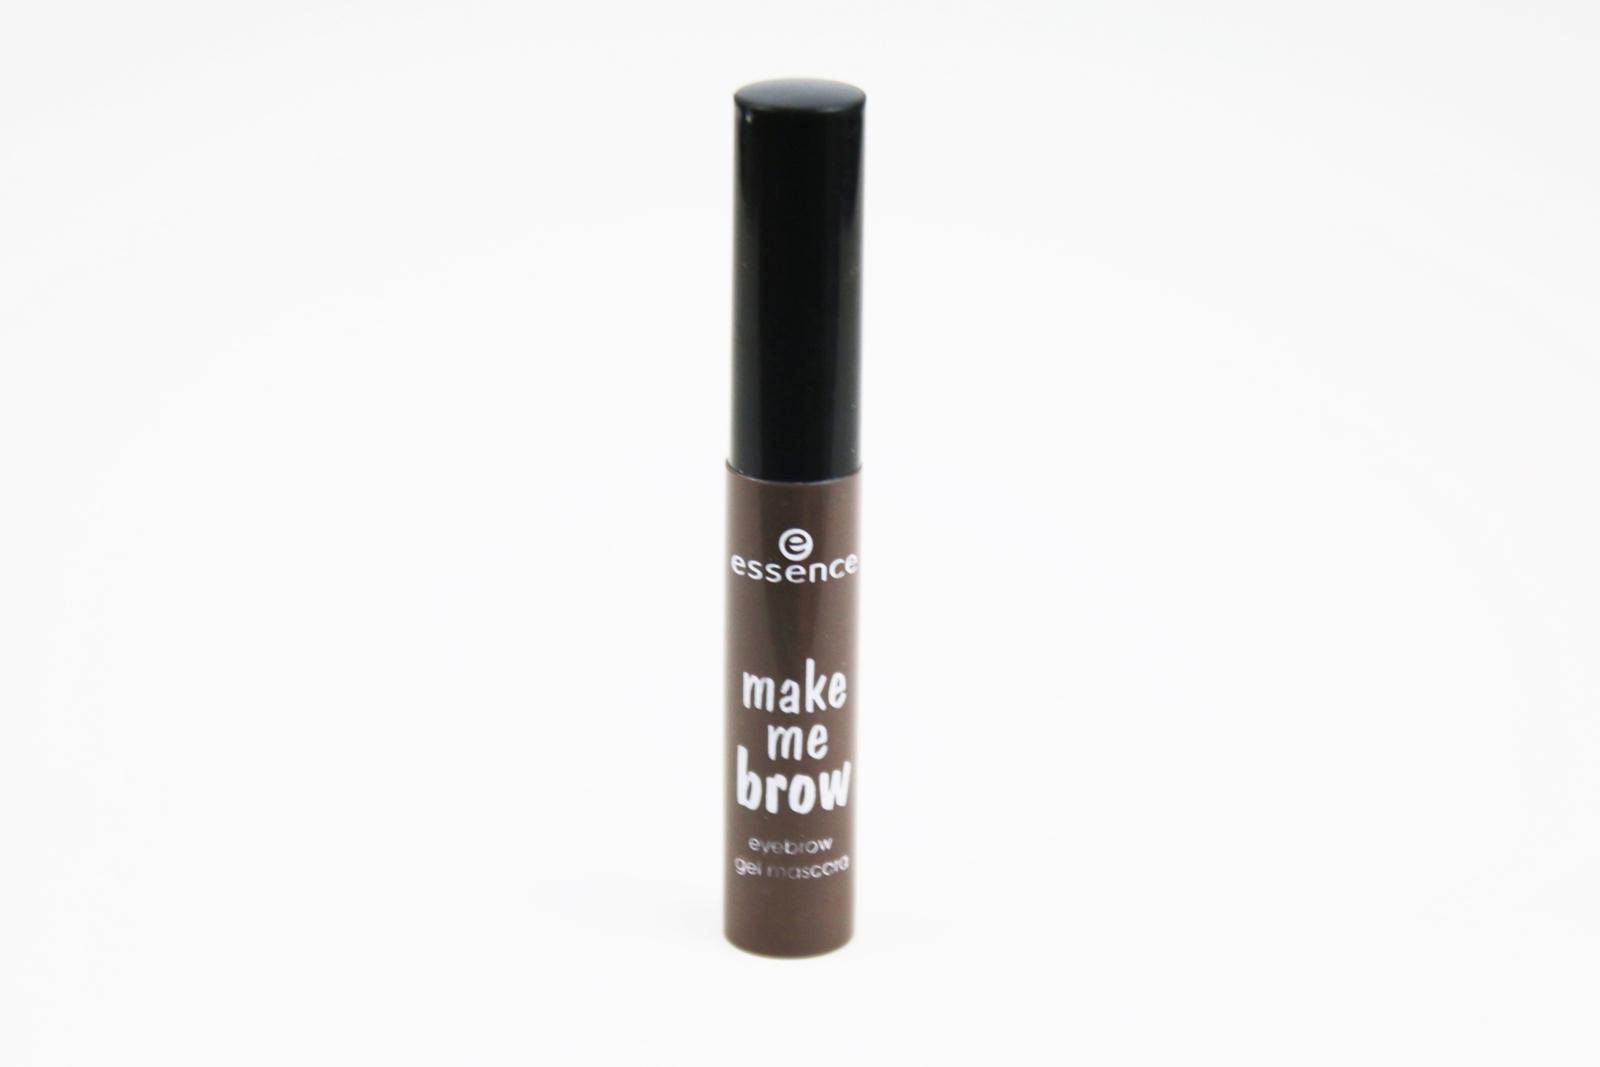 Essence Make Me Brow blog